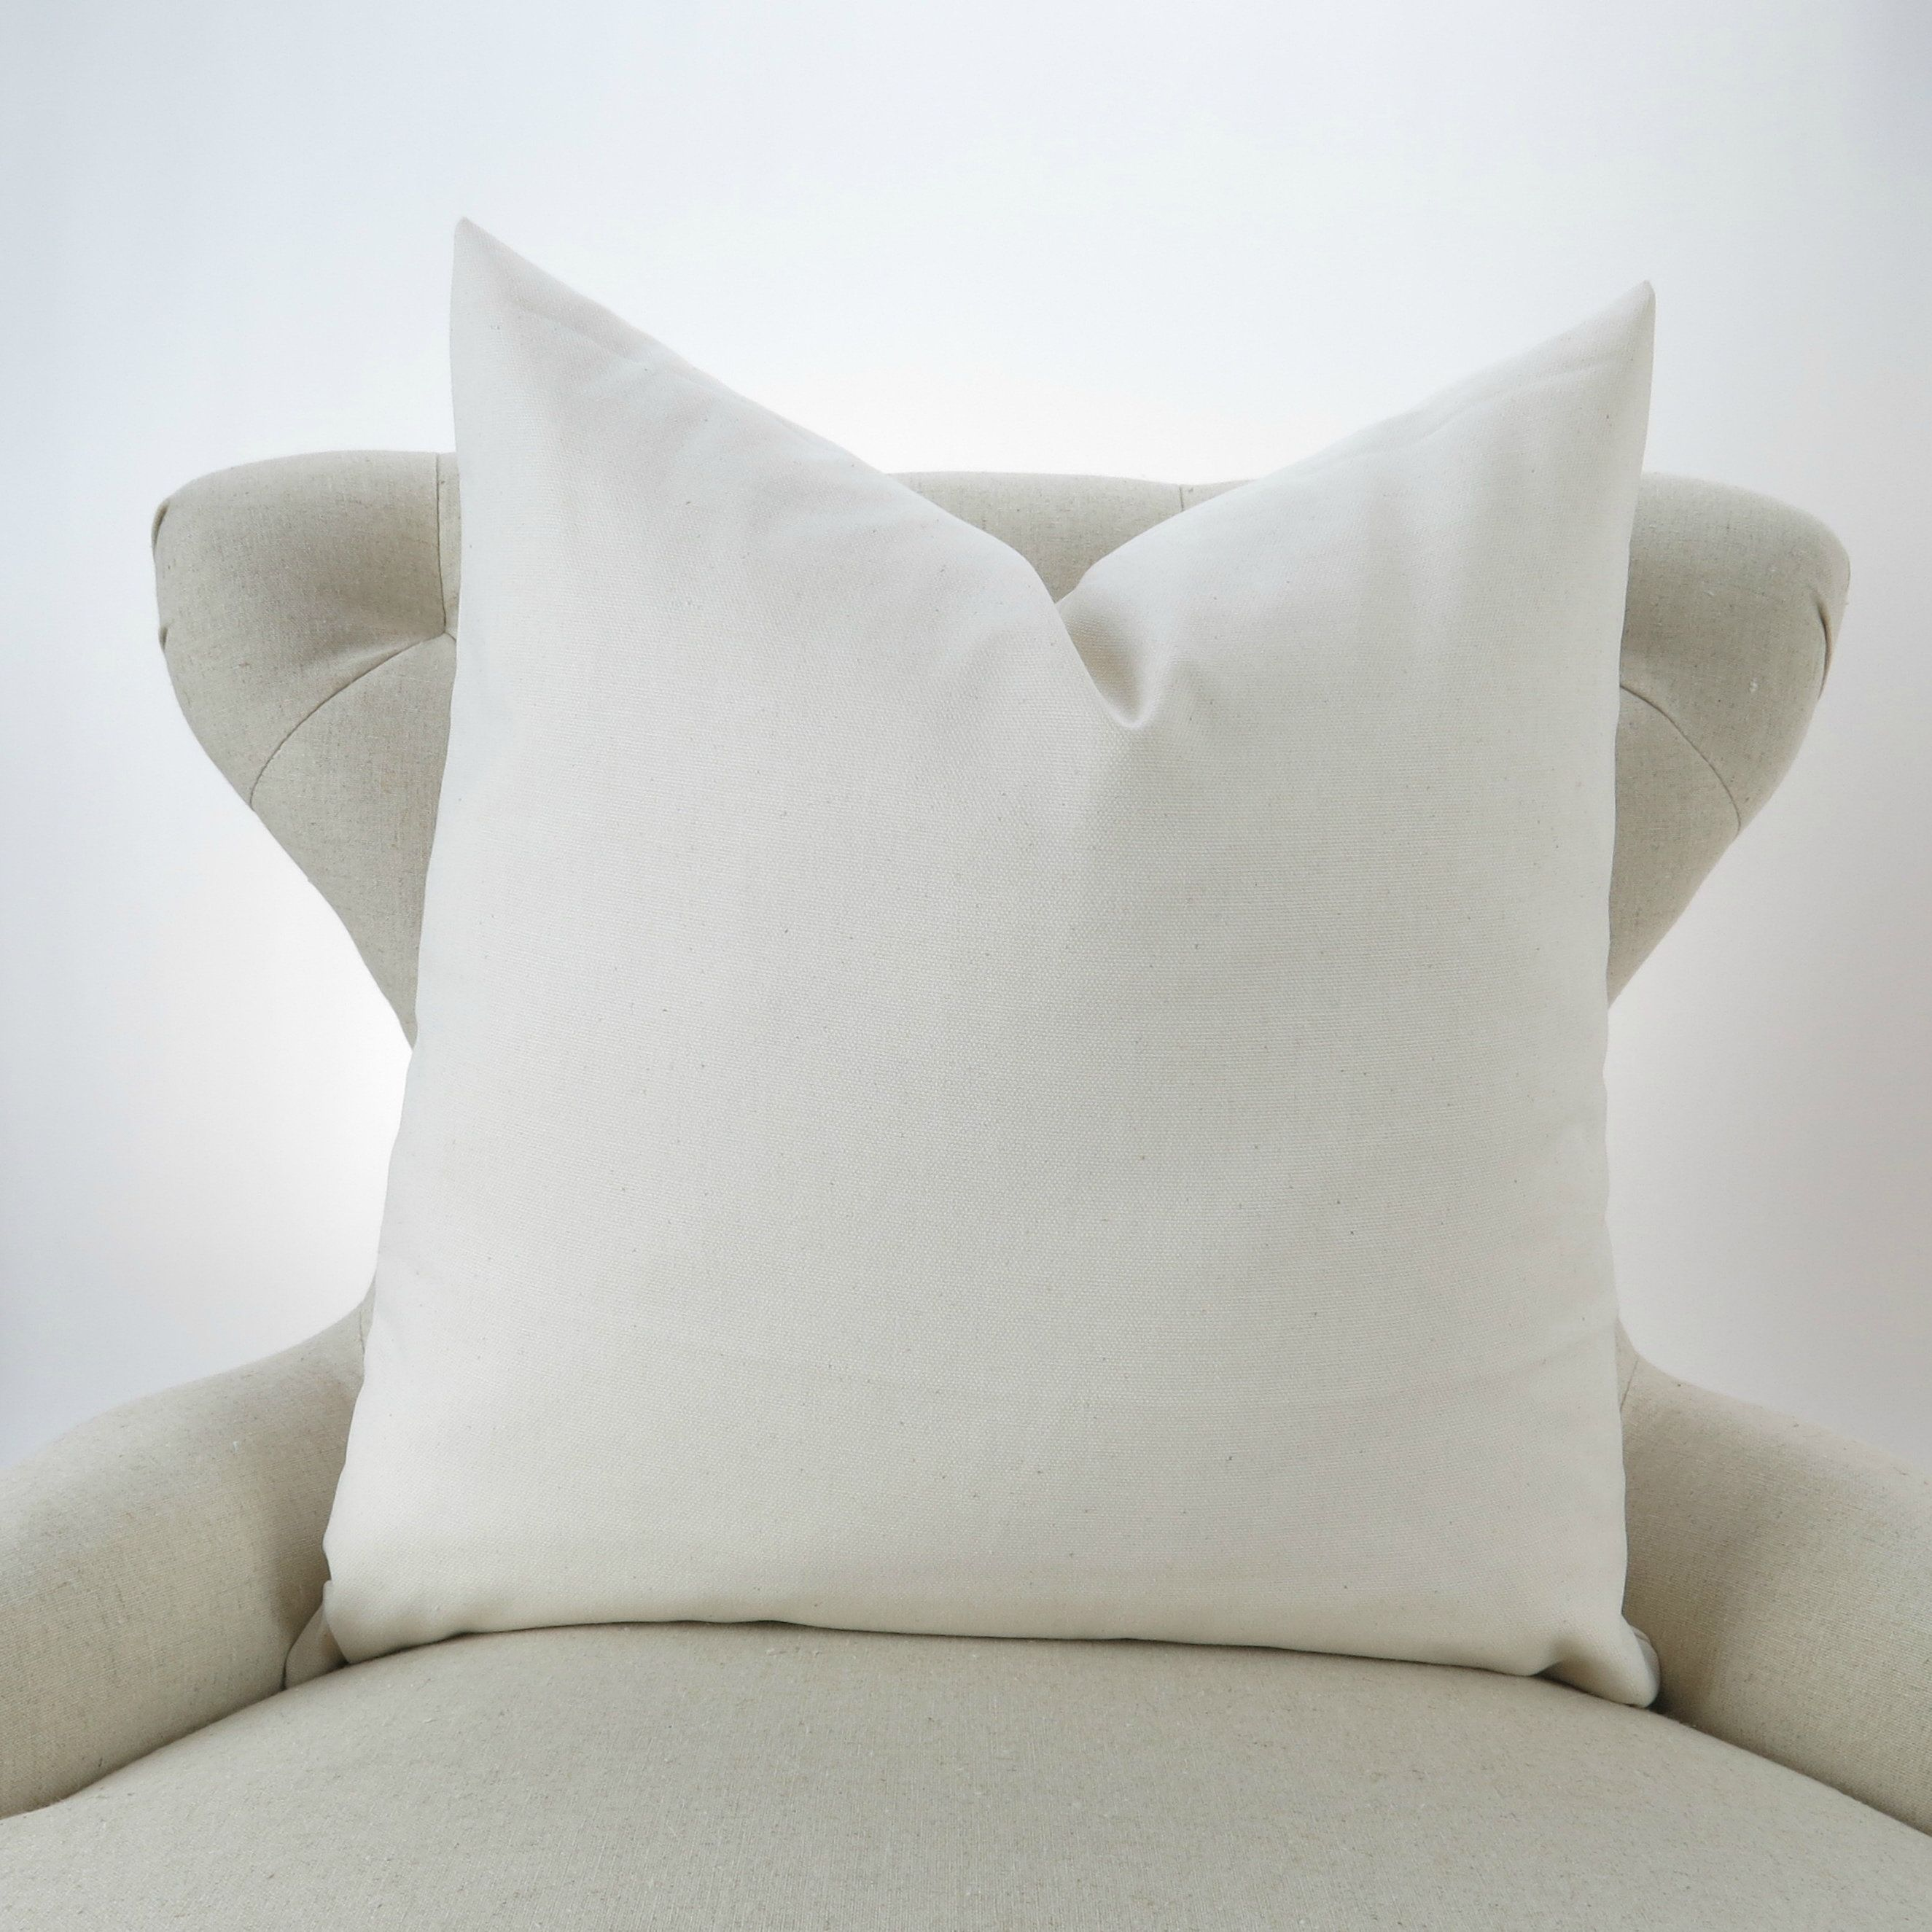 Throw Pillow Cover, Decorative Cushion